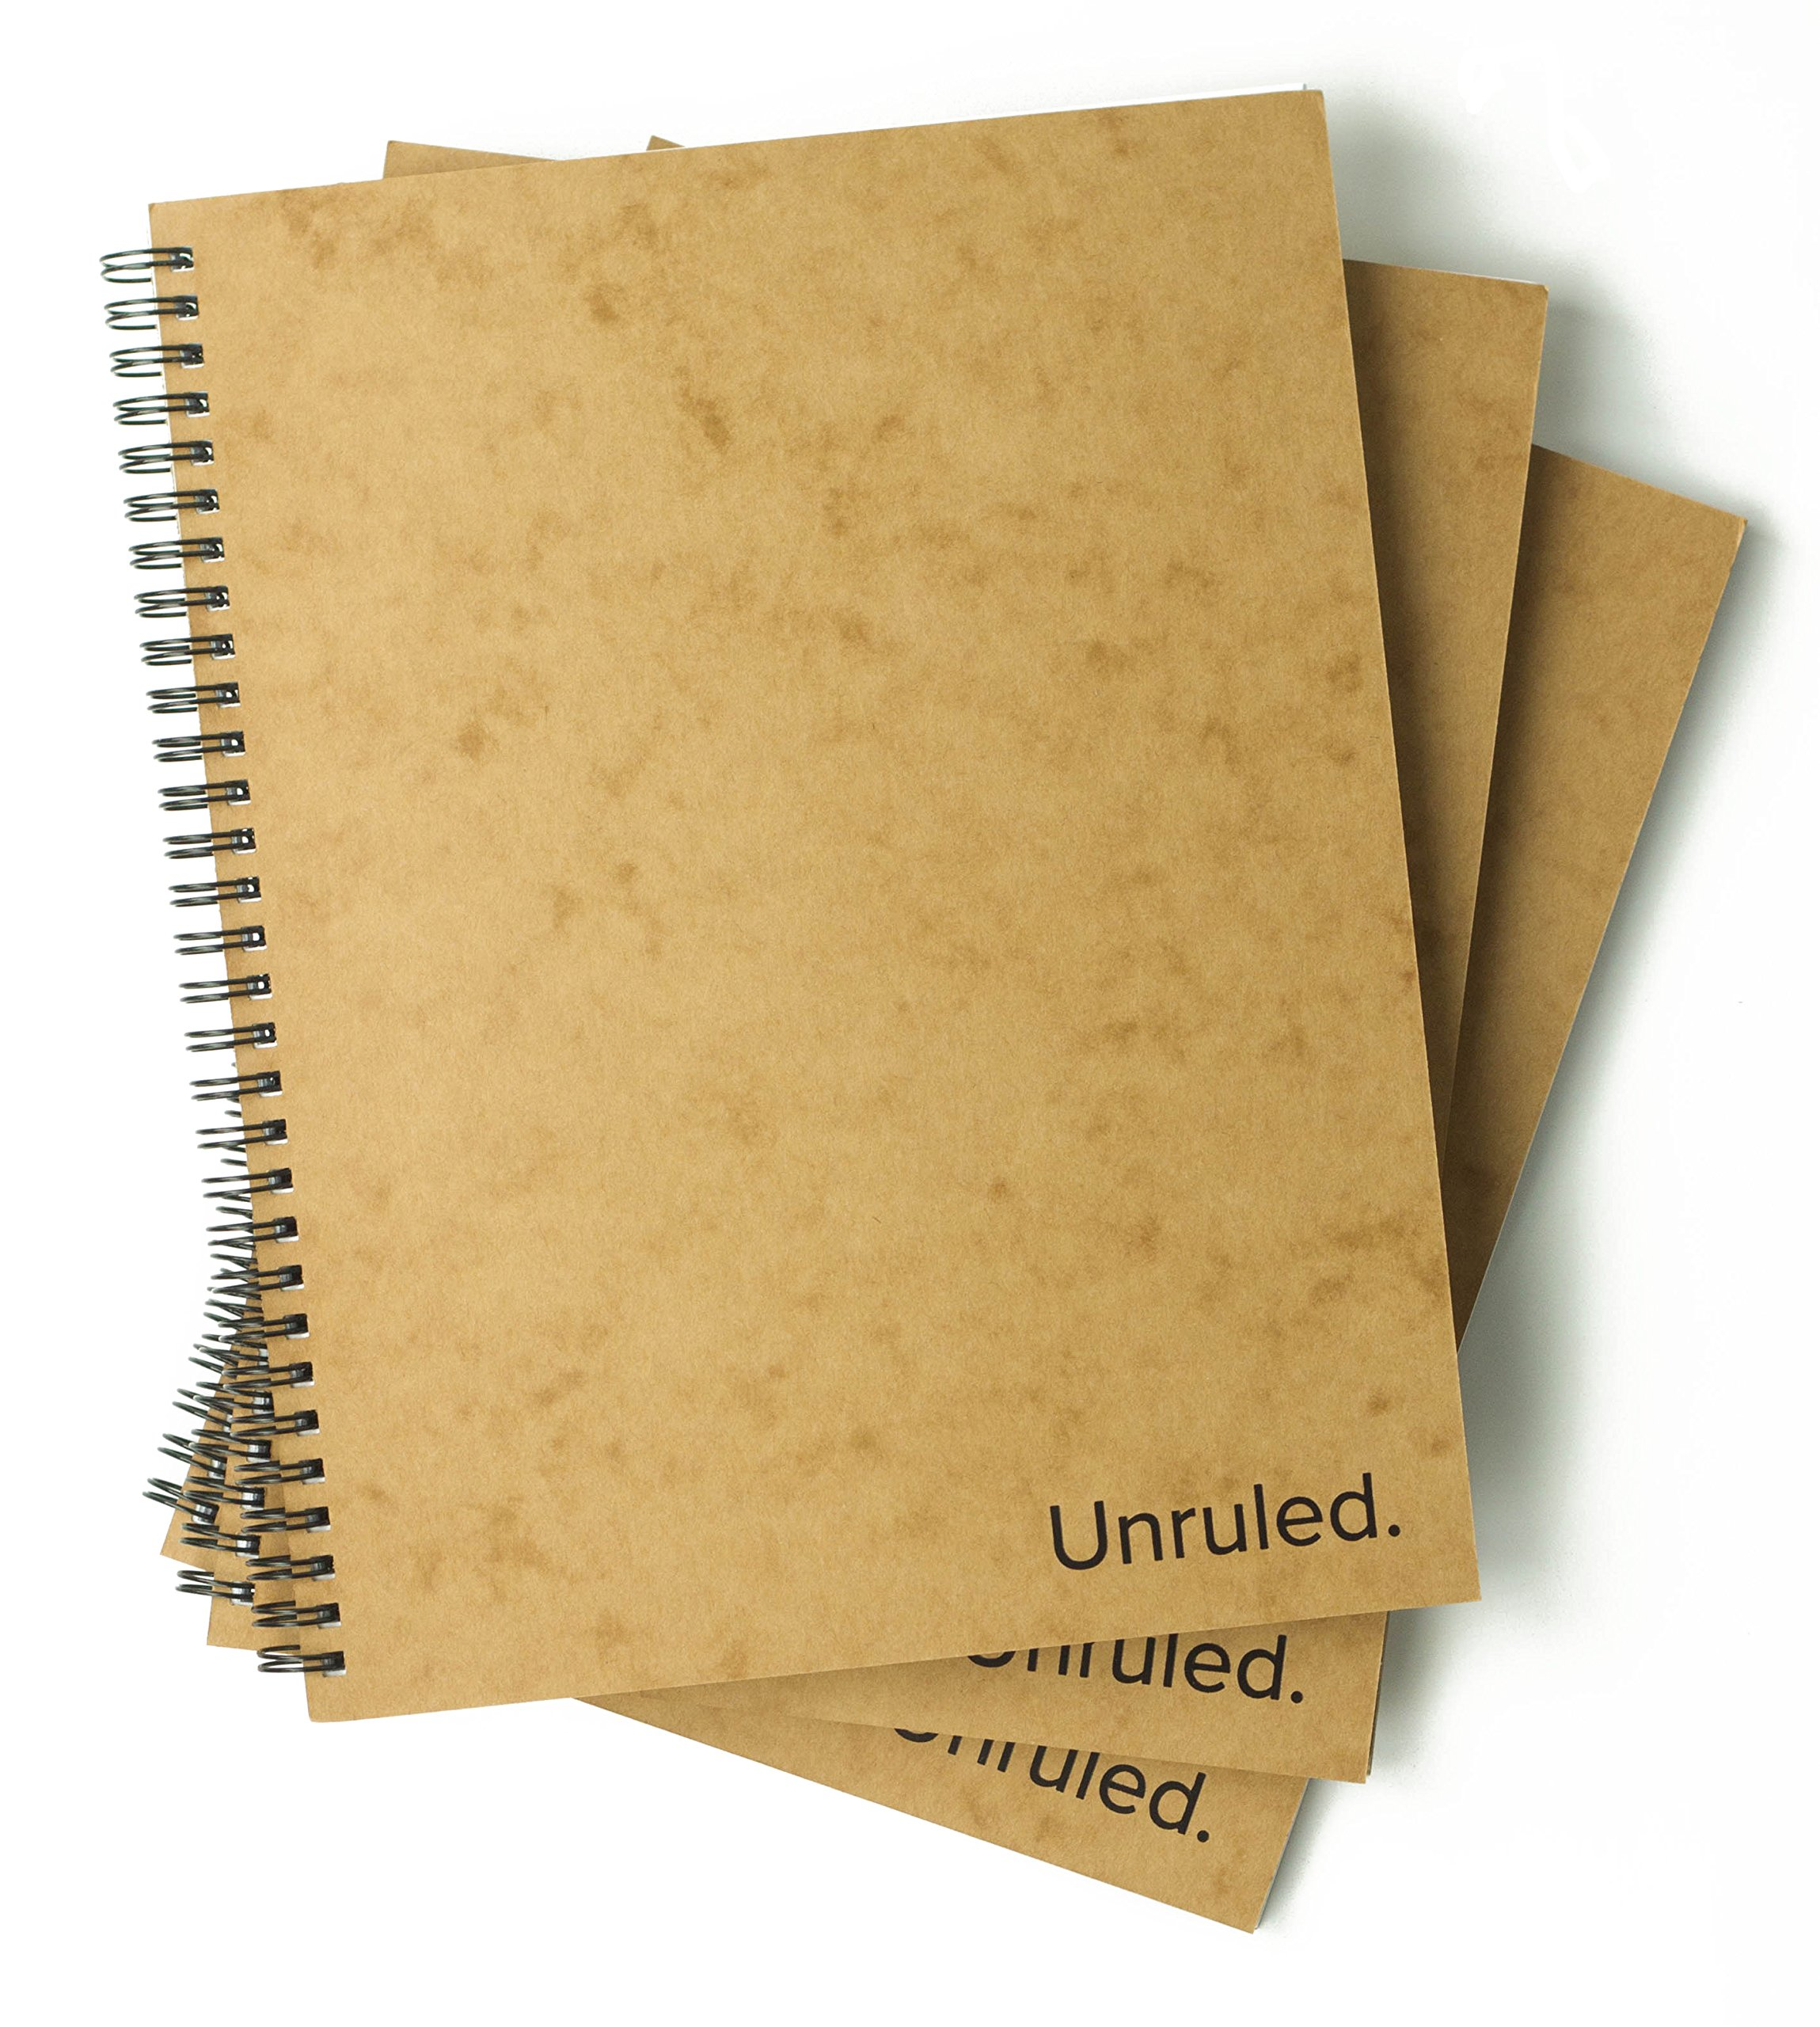 Unruled Notebook (3 Pack): Environmentally sustainable, designed by college students for visual notetaking, 60 unlined perforated sheets, 8 x 10.5 inches